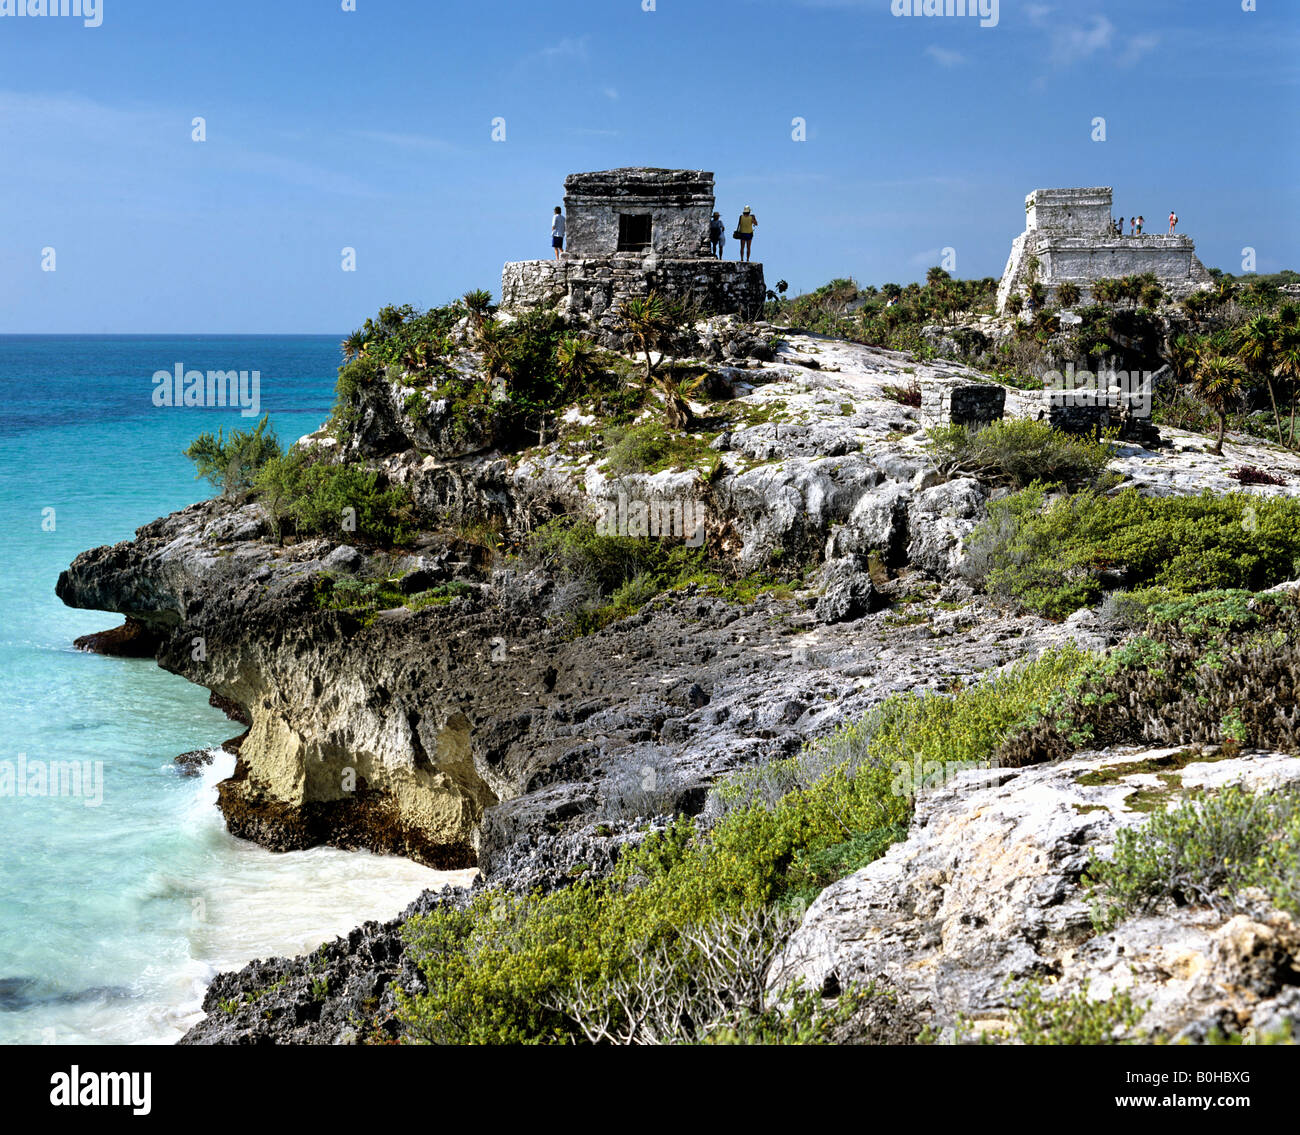 Tulúm, pre-Columbian Maya or Mayan city, ruins at the Maya River, Quintana Roo, Mexico, Central America - Stock Image